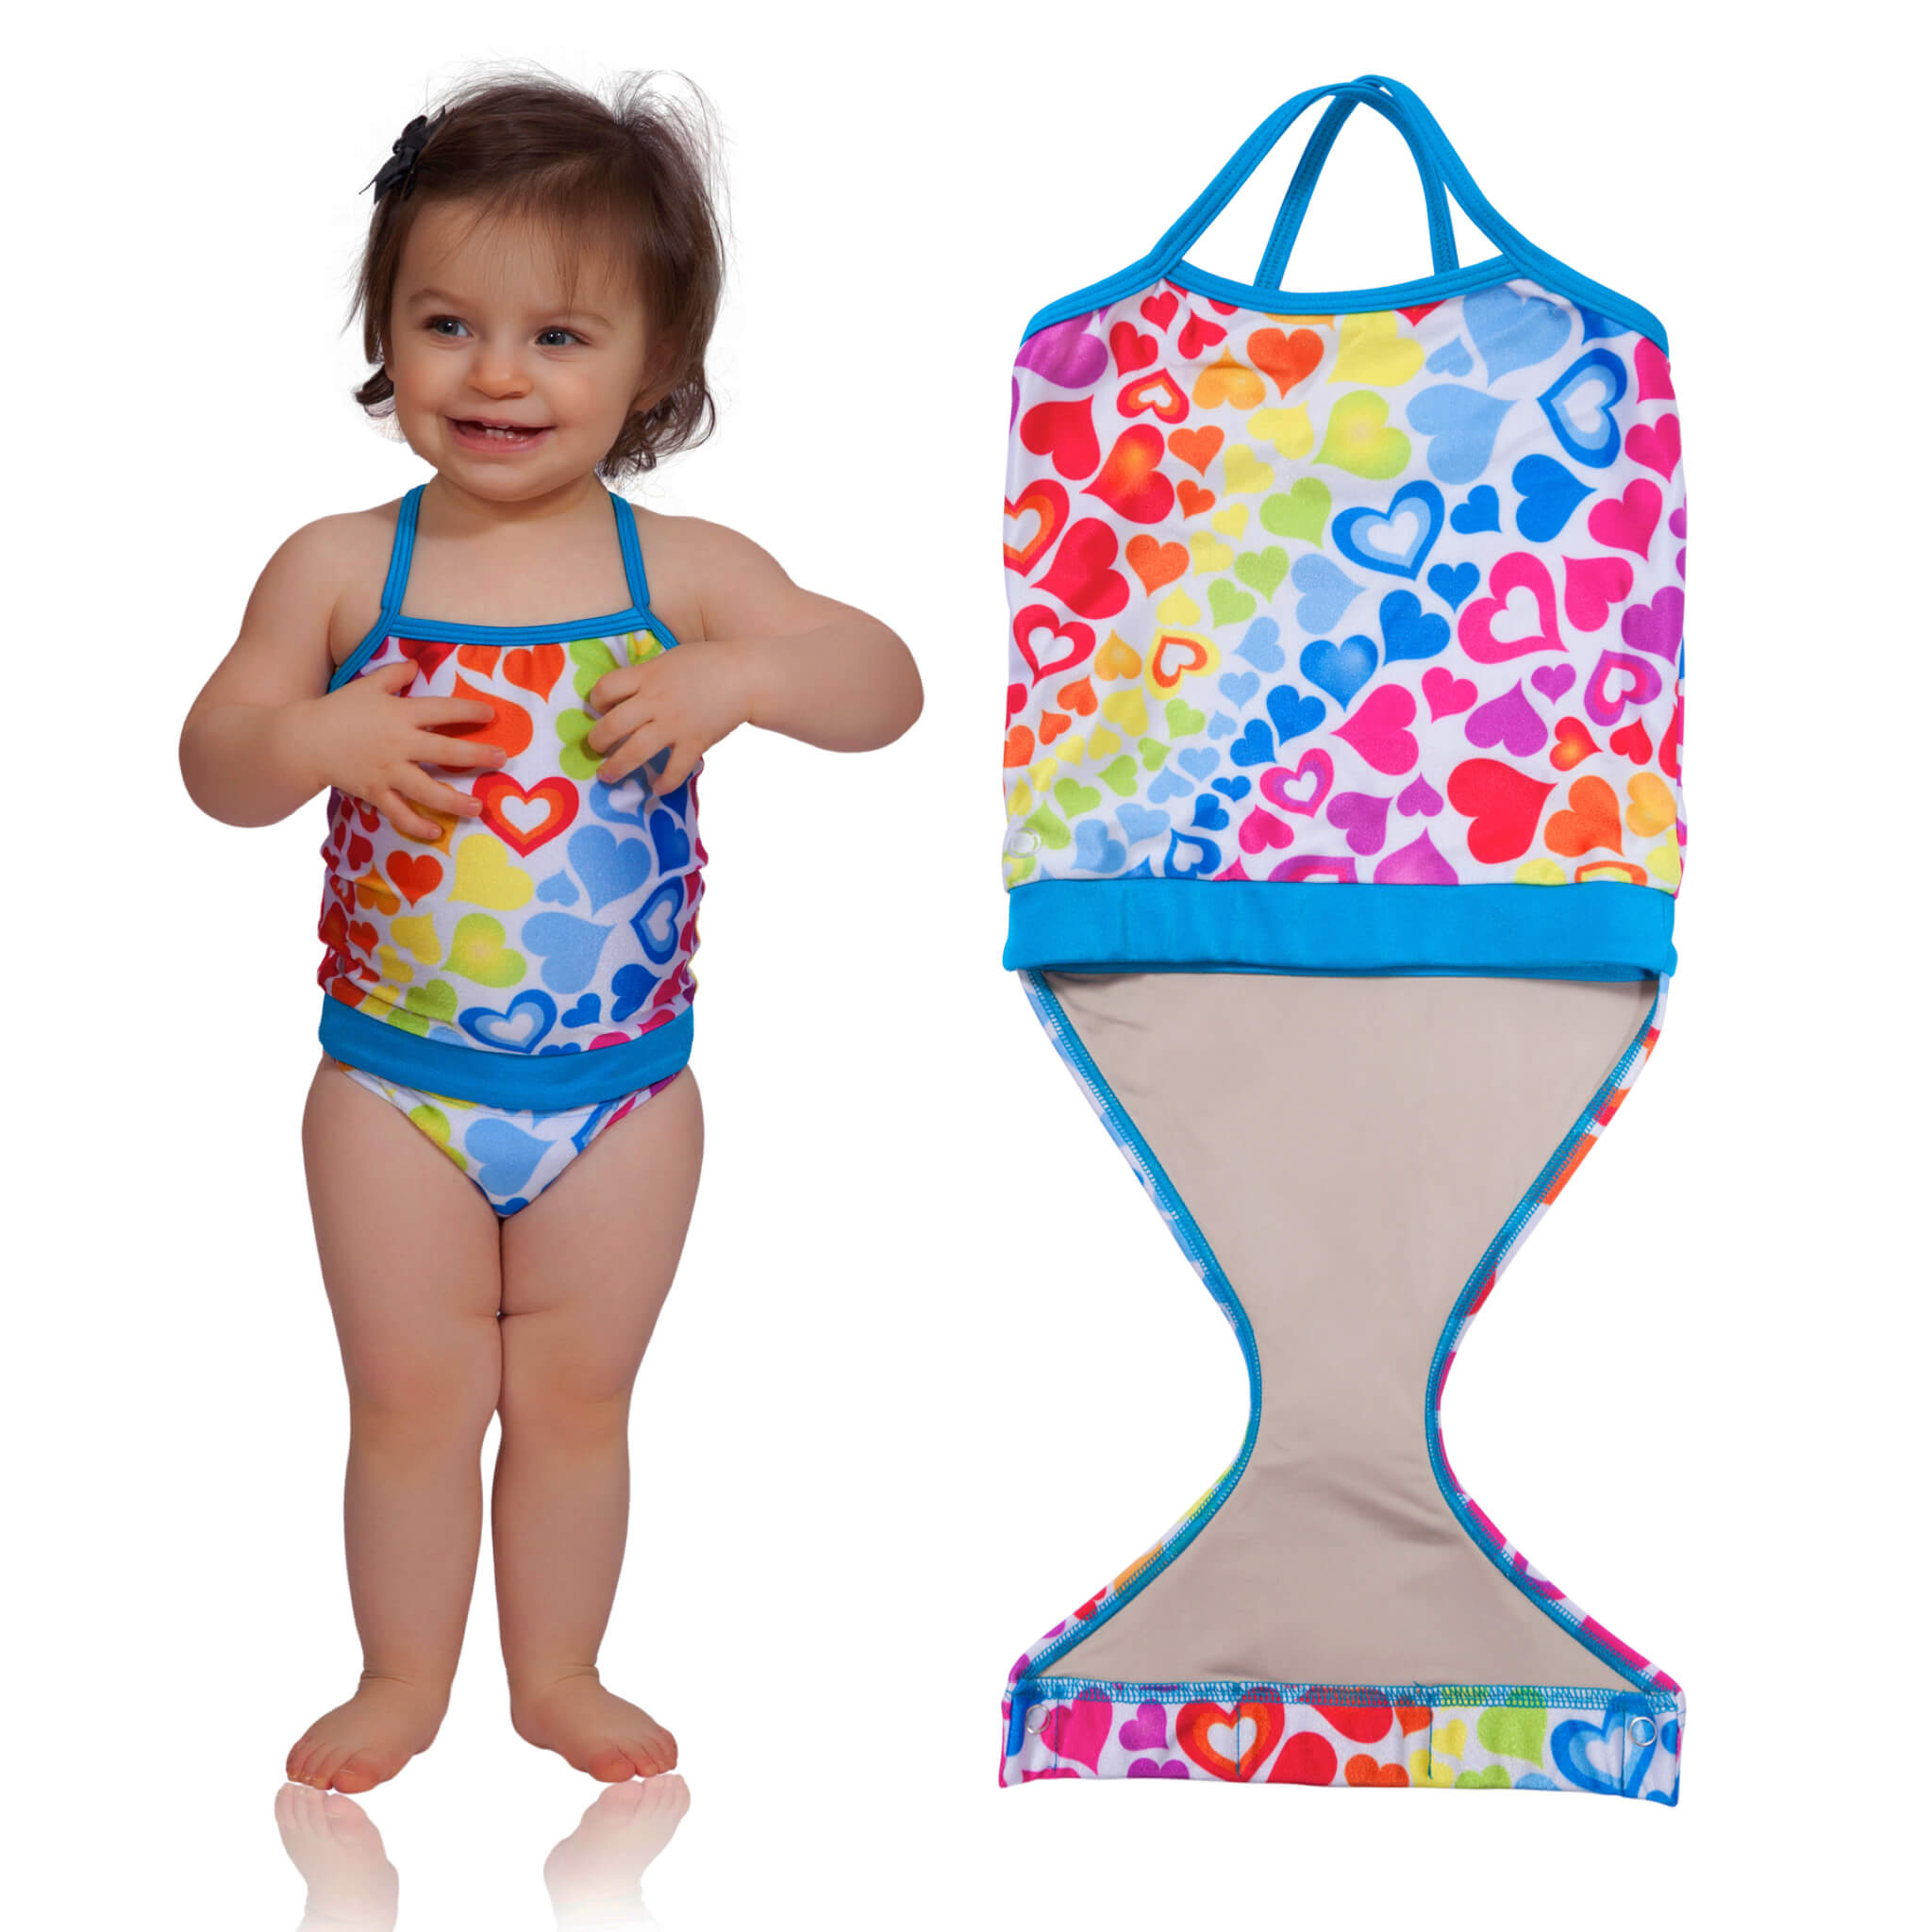 Baby Swimwear The cutest swim shorts, swimsuits and bikinis, paddling in the water will be extra fun with our adorable baby swimwear. Make a splash with brightly coloured designs and bold prints from specialist brands such as Vilebrequin, Zimmerman and Submarine; choose the best styles for learning to swim from Speedo and Beverley Kids; and.